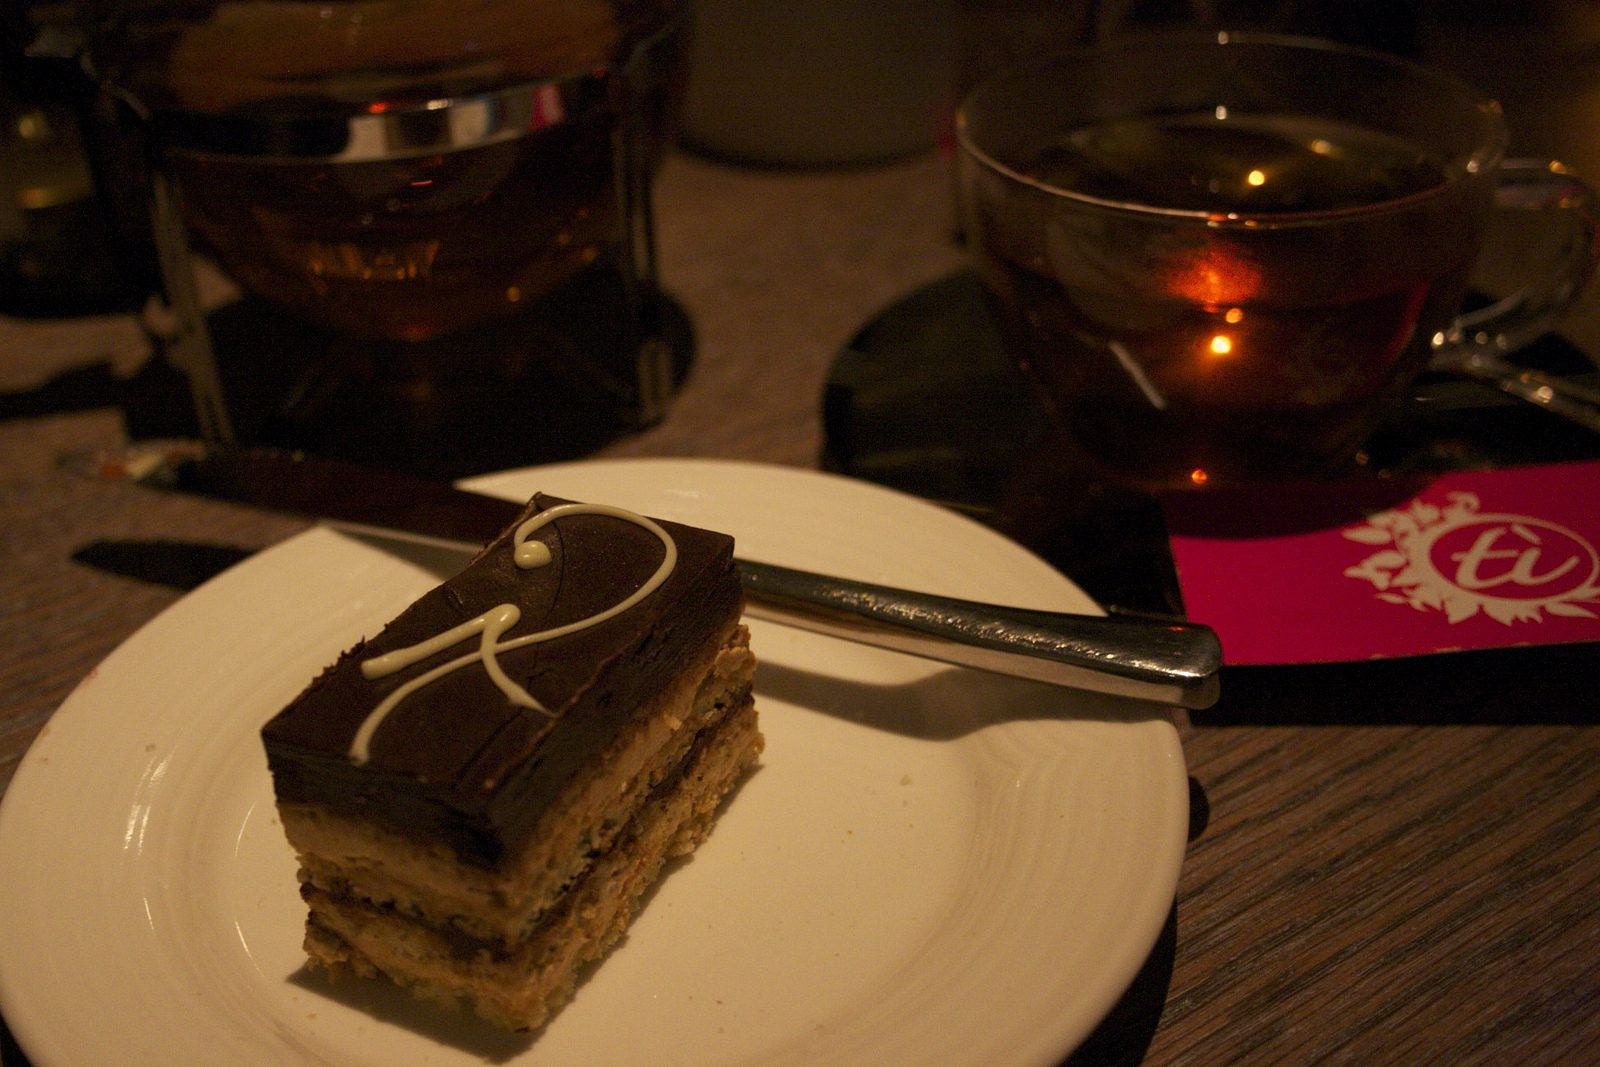 cake dates: ti lounge @ glasgow hilton;